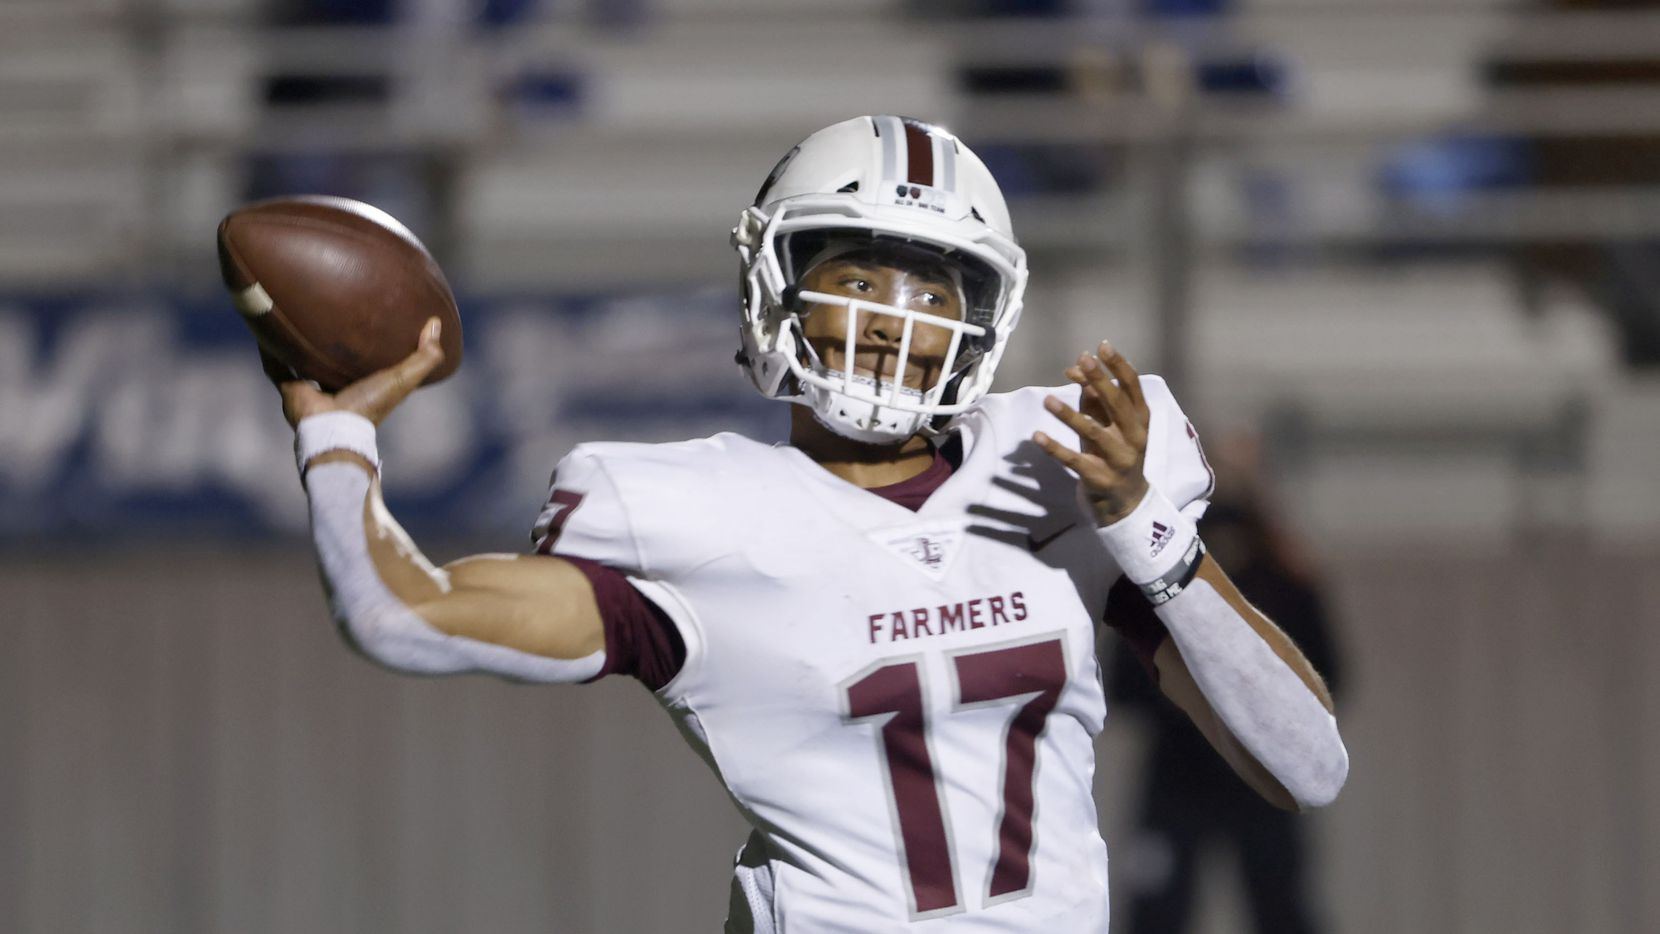 Lewisville quarterback Taylen Green (17) throws a pass against Hebron during their District 6-6A high school football game on Dec. 4, 2020. (Michael Ainsworth/Special Contributor)